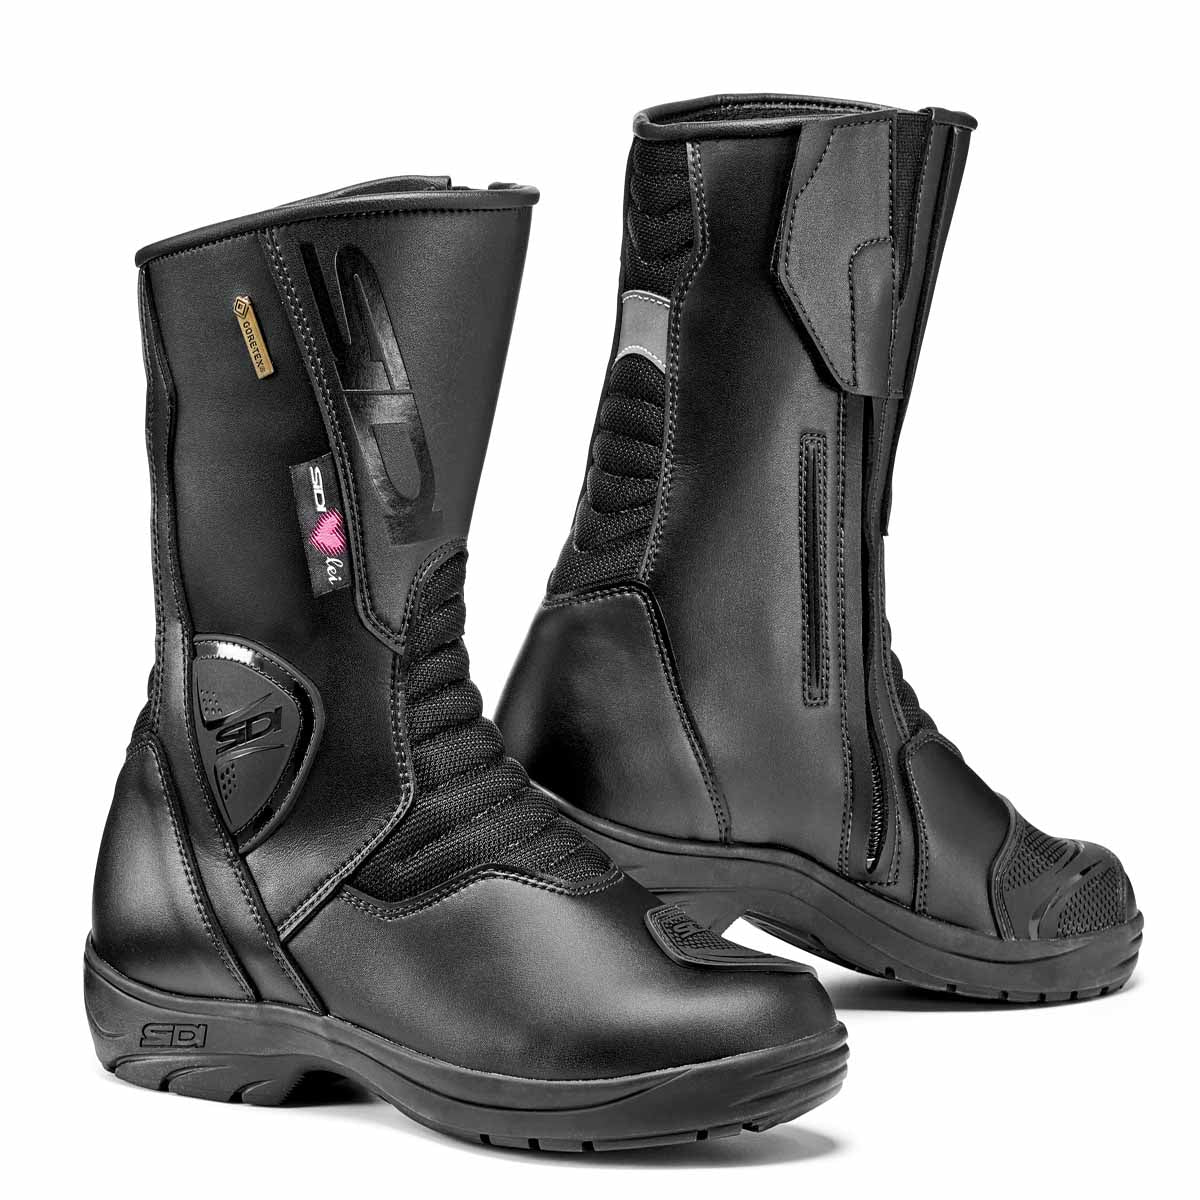 Sidi - Gavia Gore Lady Black Gore -Tex Waterproof CE Boot